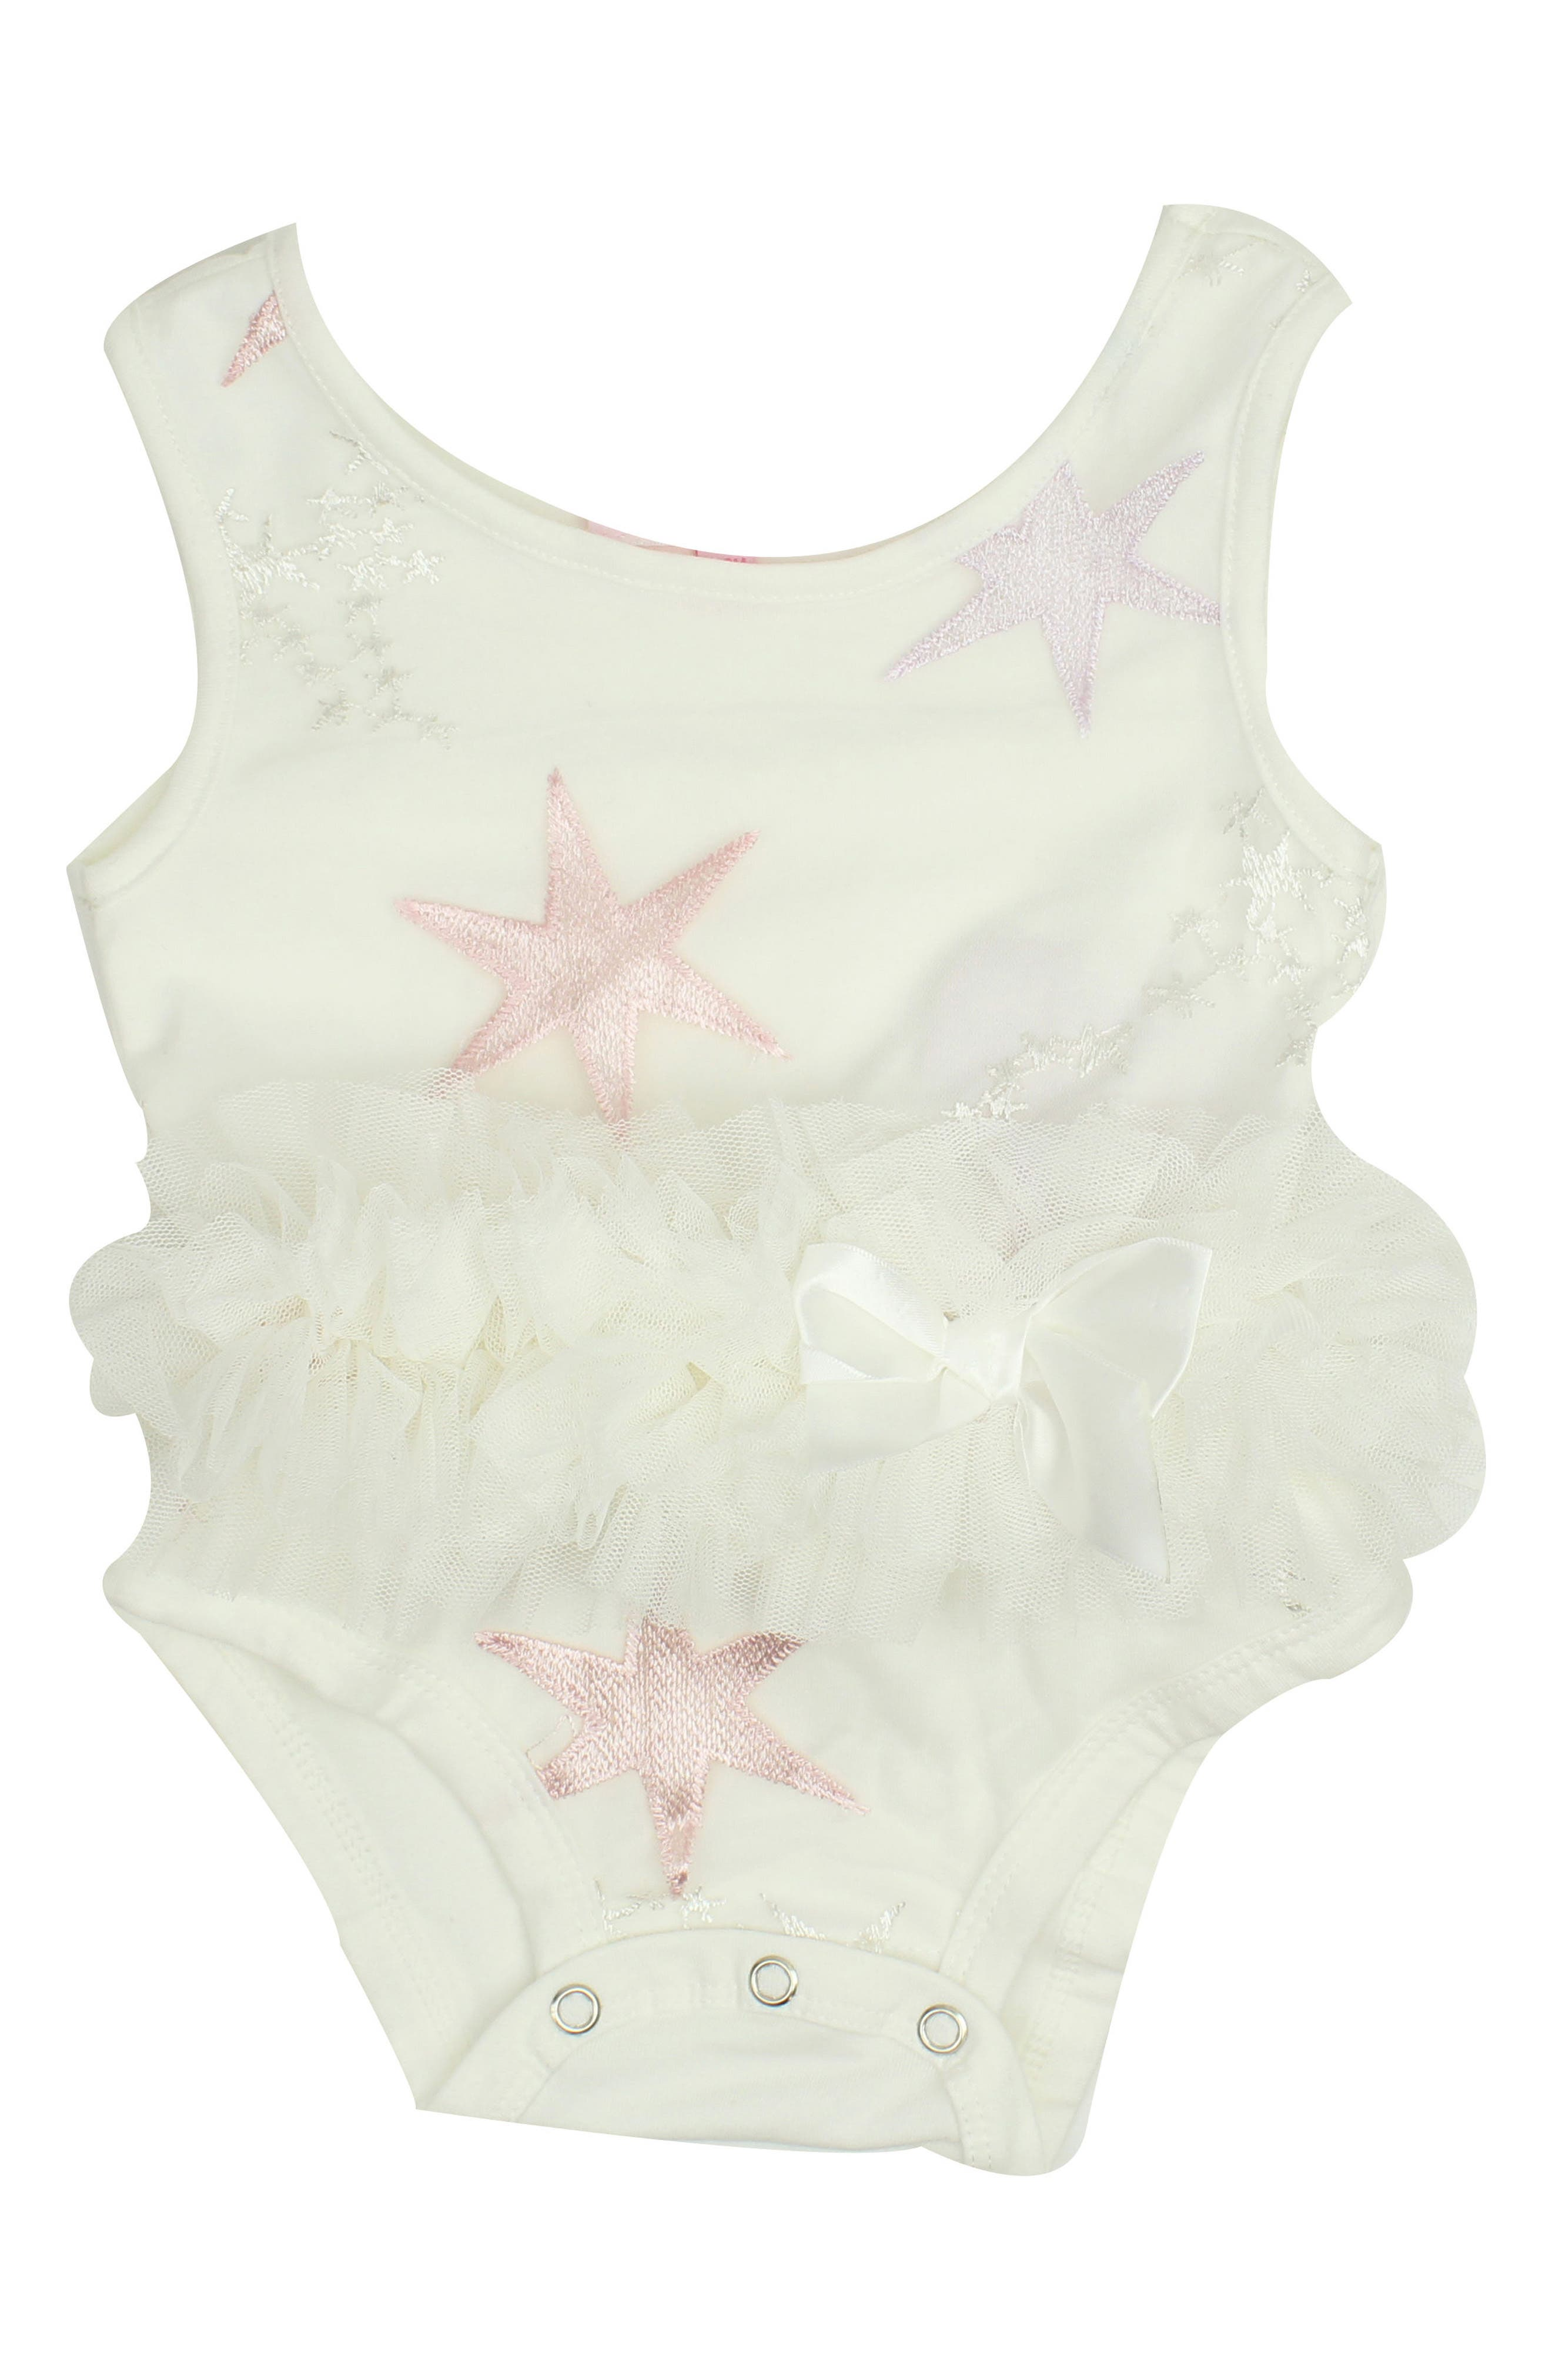 Star Embroidered Tutu Bodysuit,                             Main thumbnail 1, color,                             White